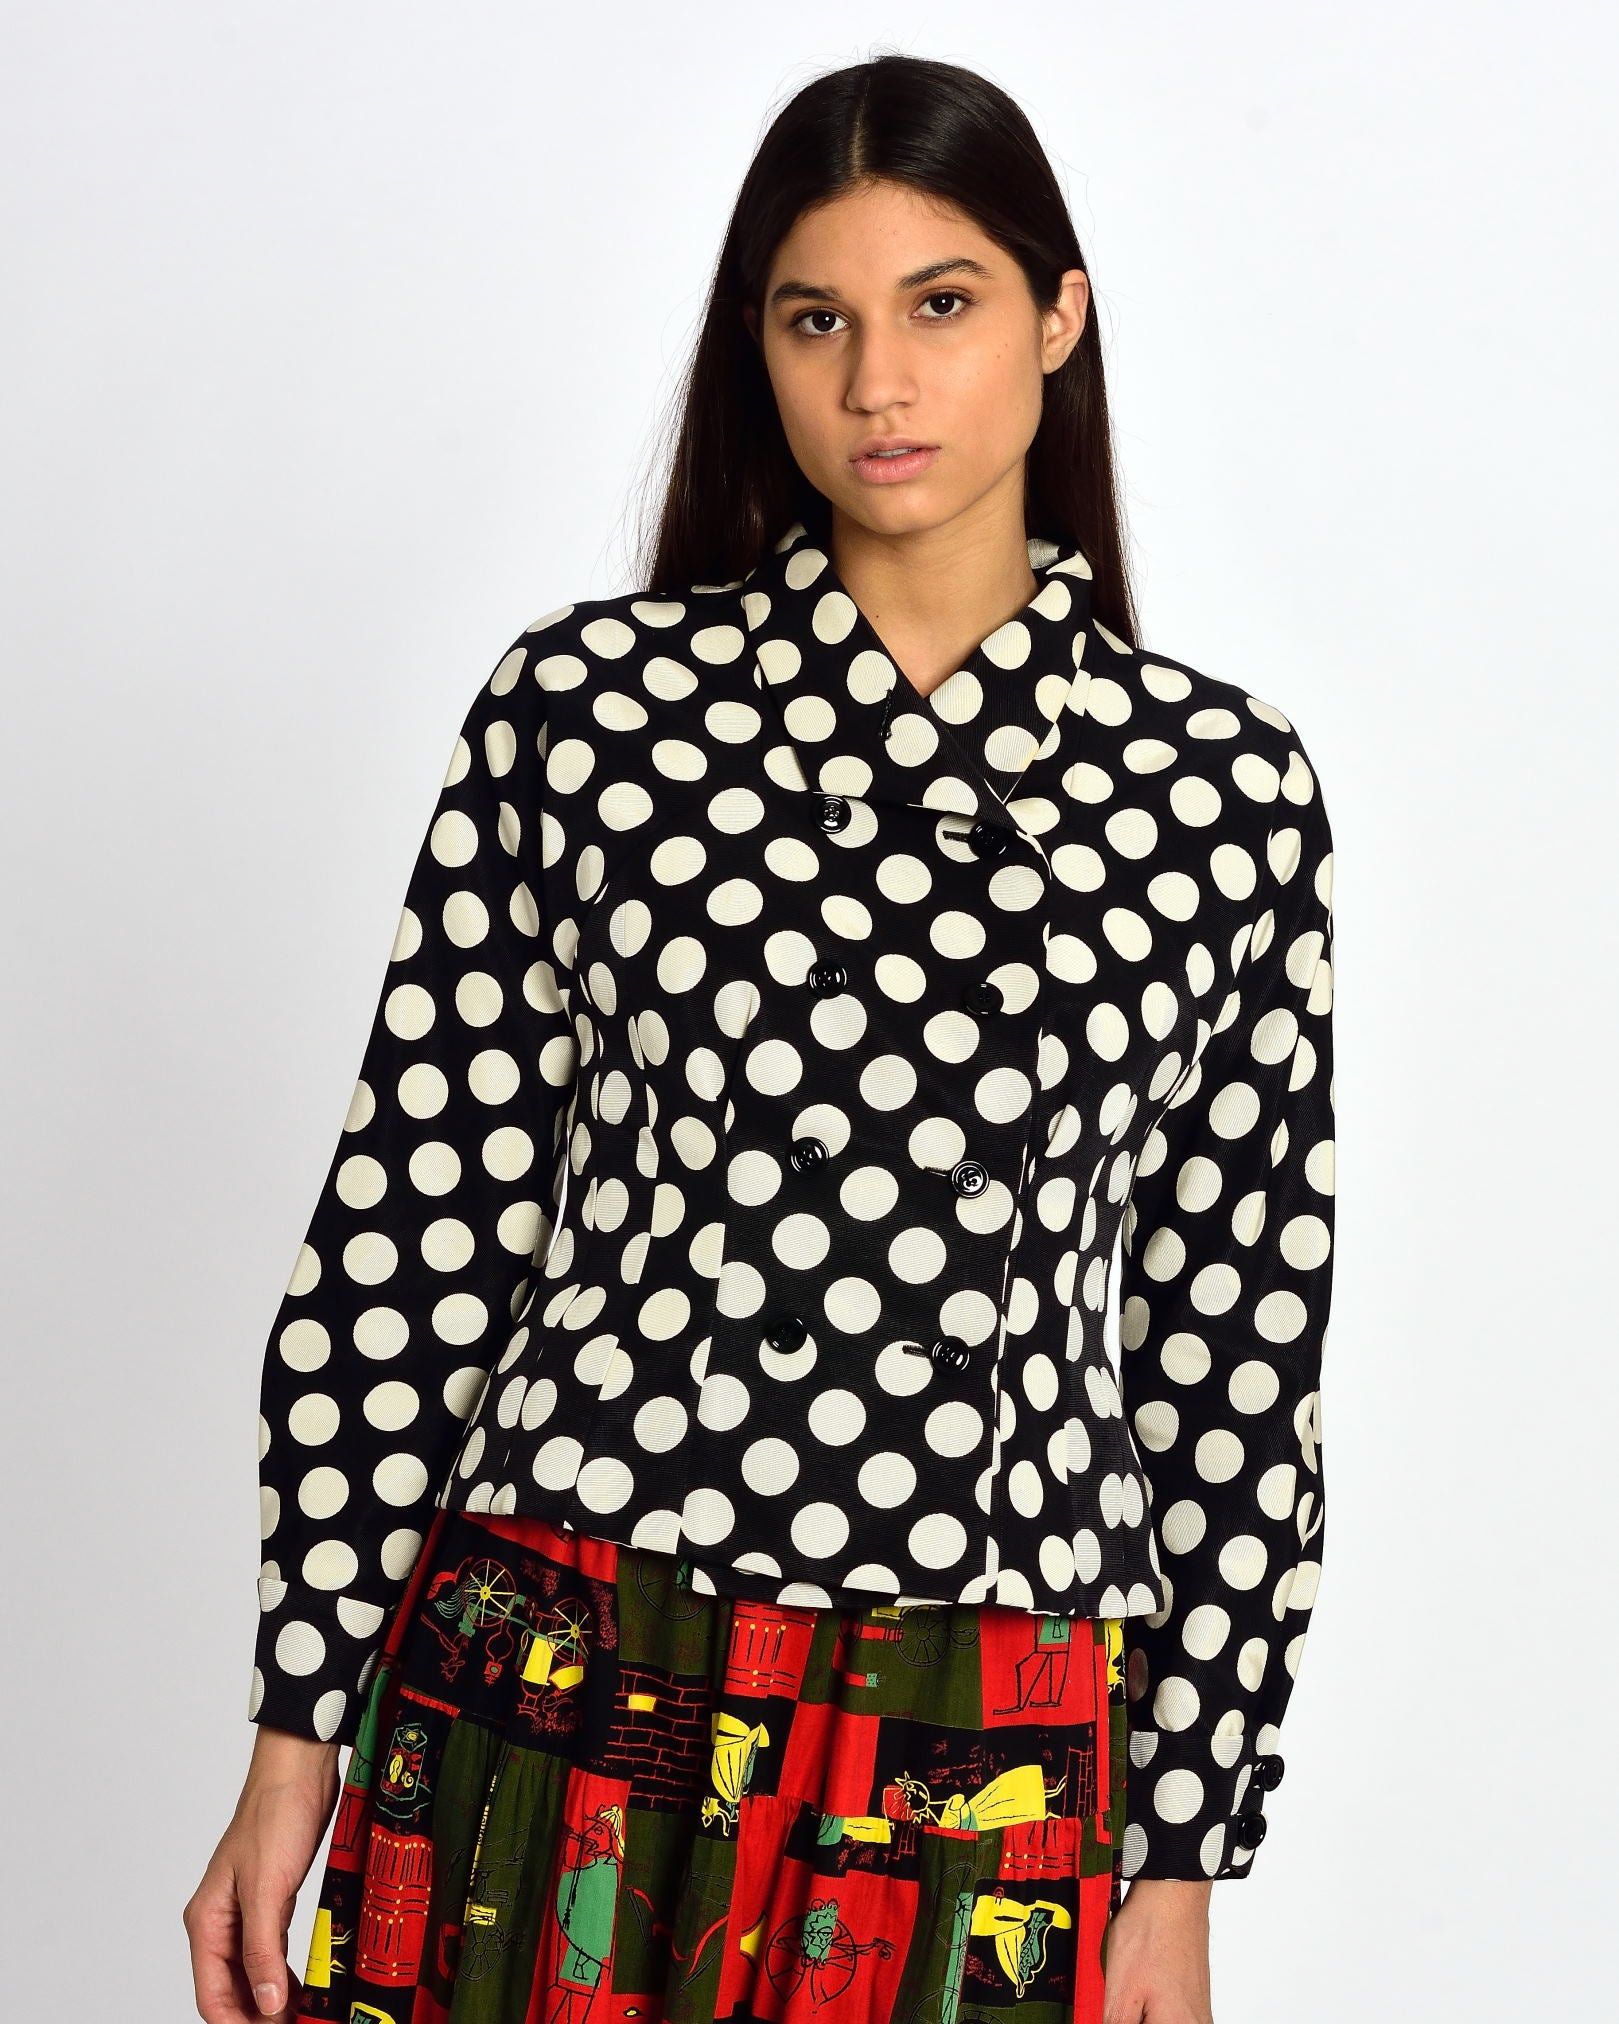 YVES SAINT LAURENT Black and White Polka Dot Jacket